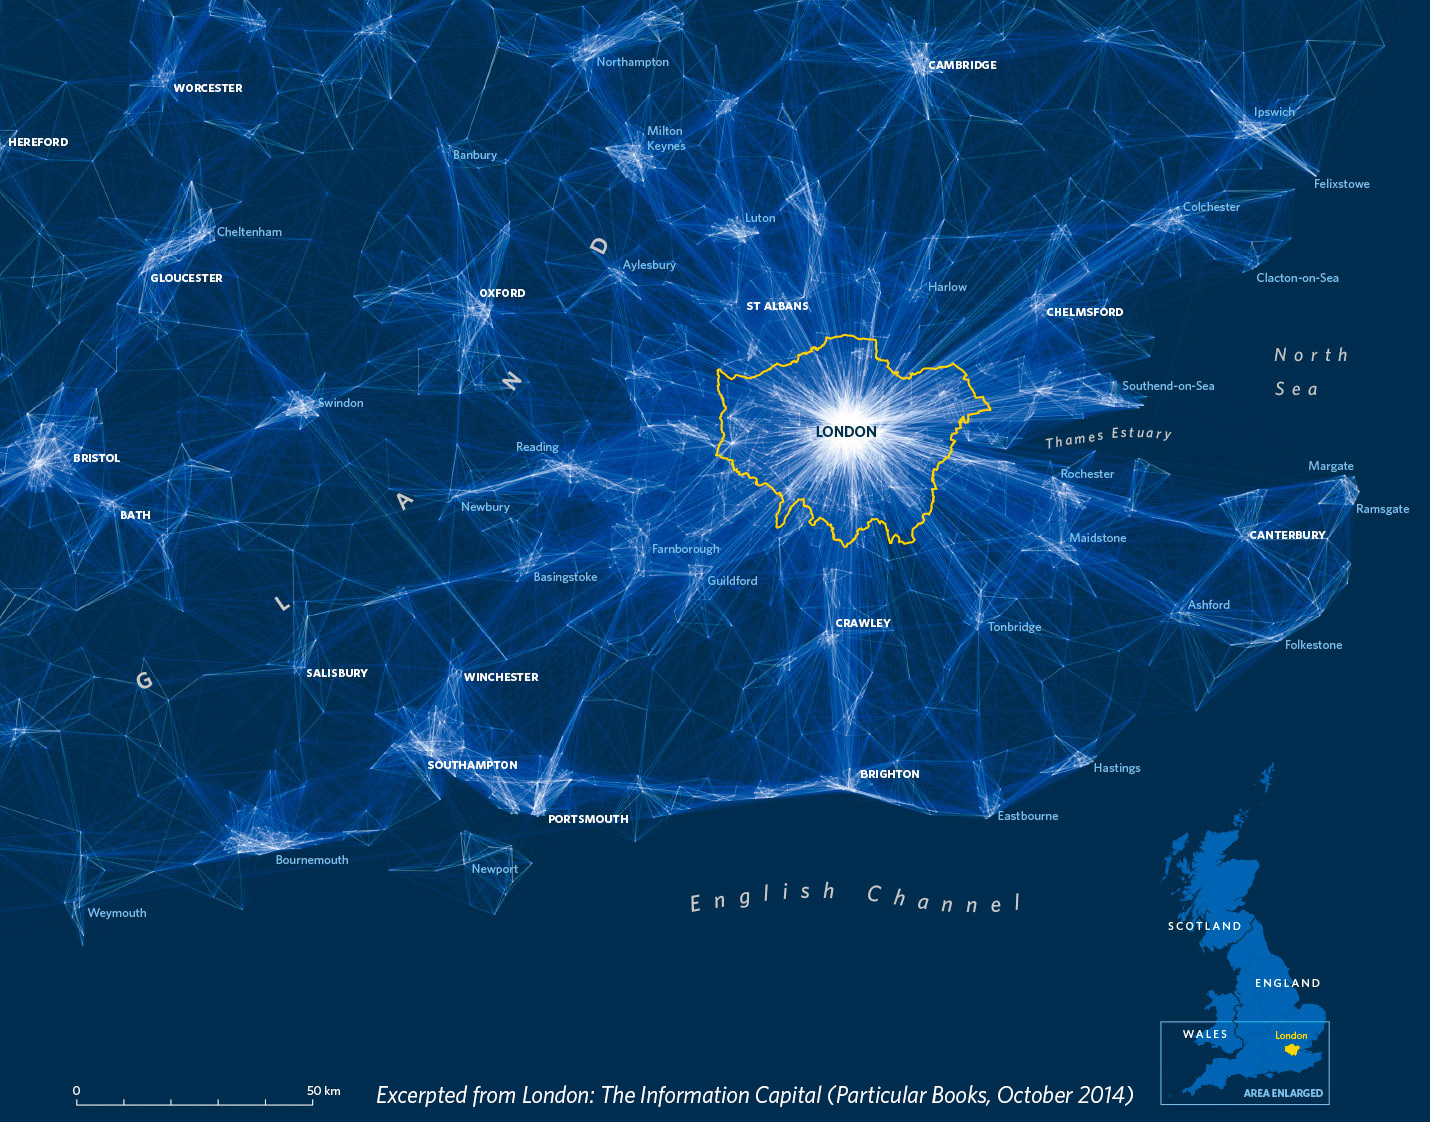 Commuter flows into London, taken from the 2011 Census.